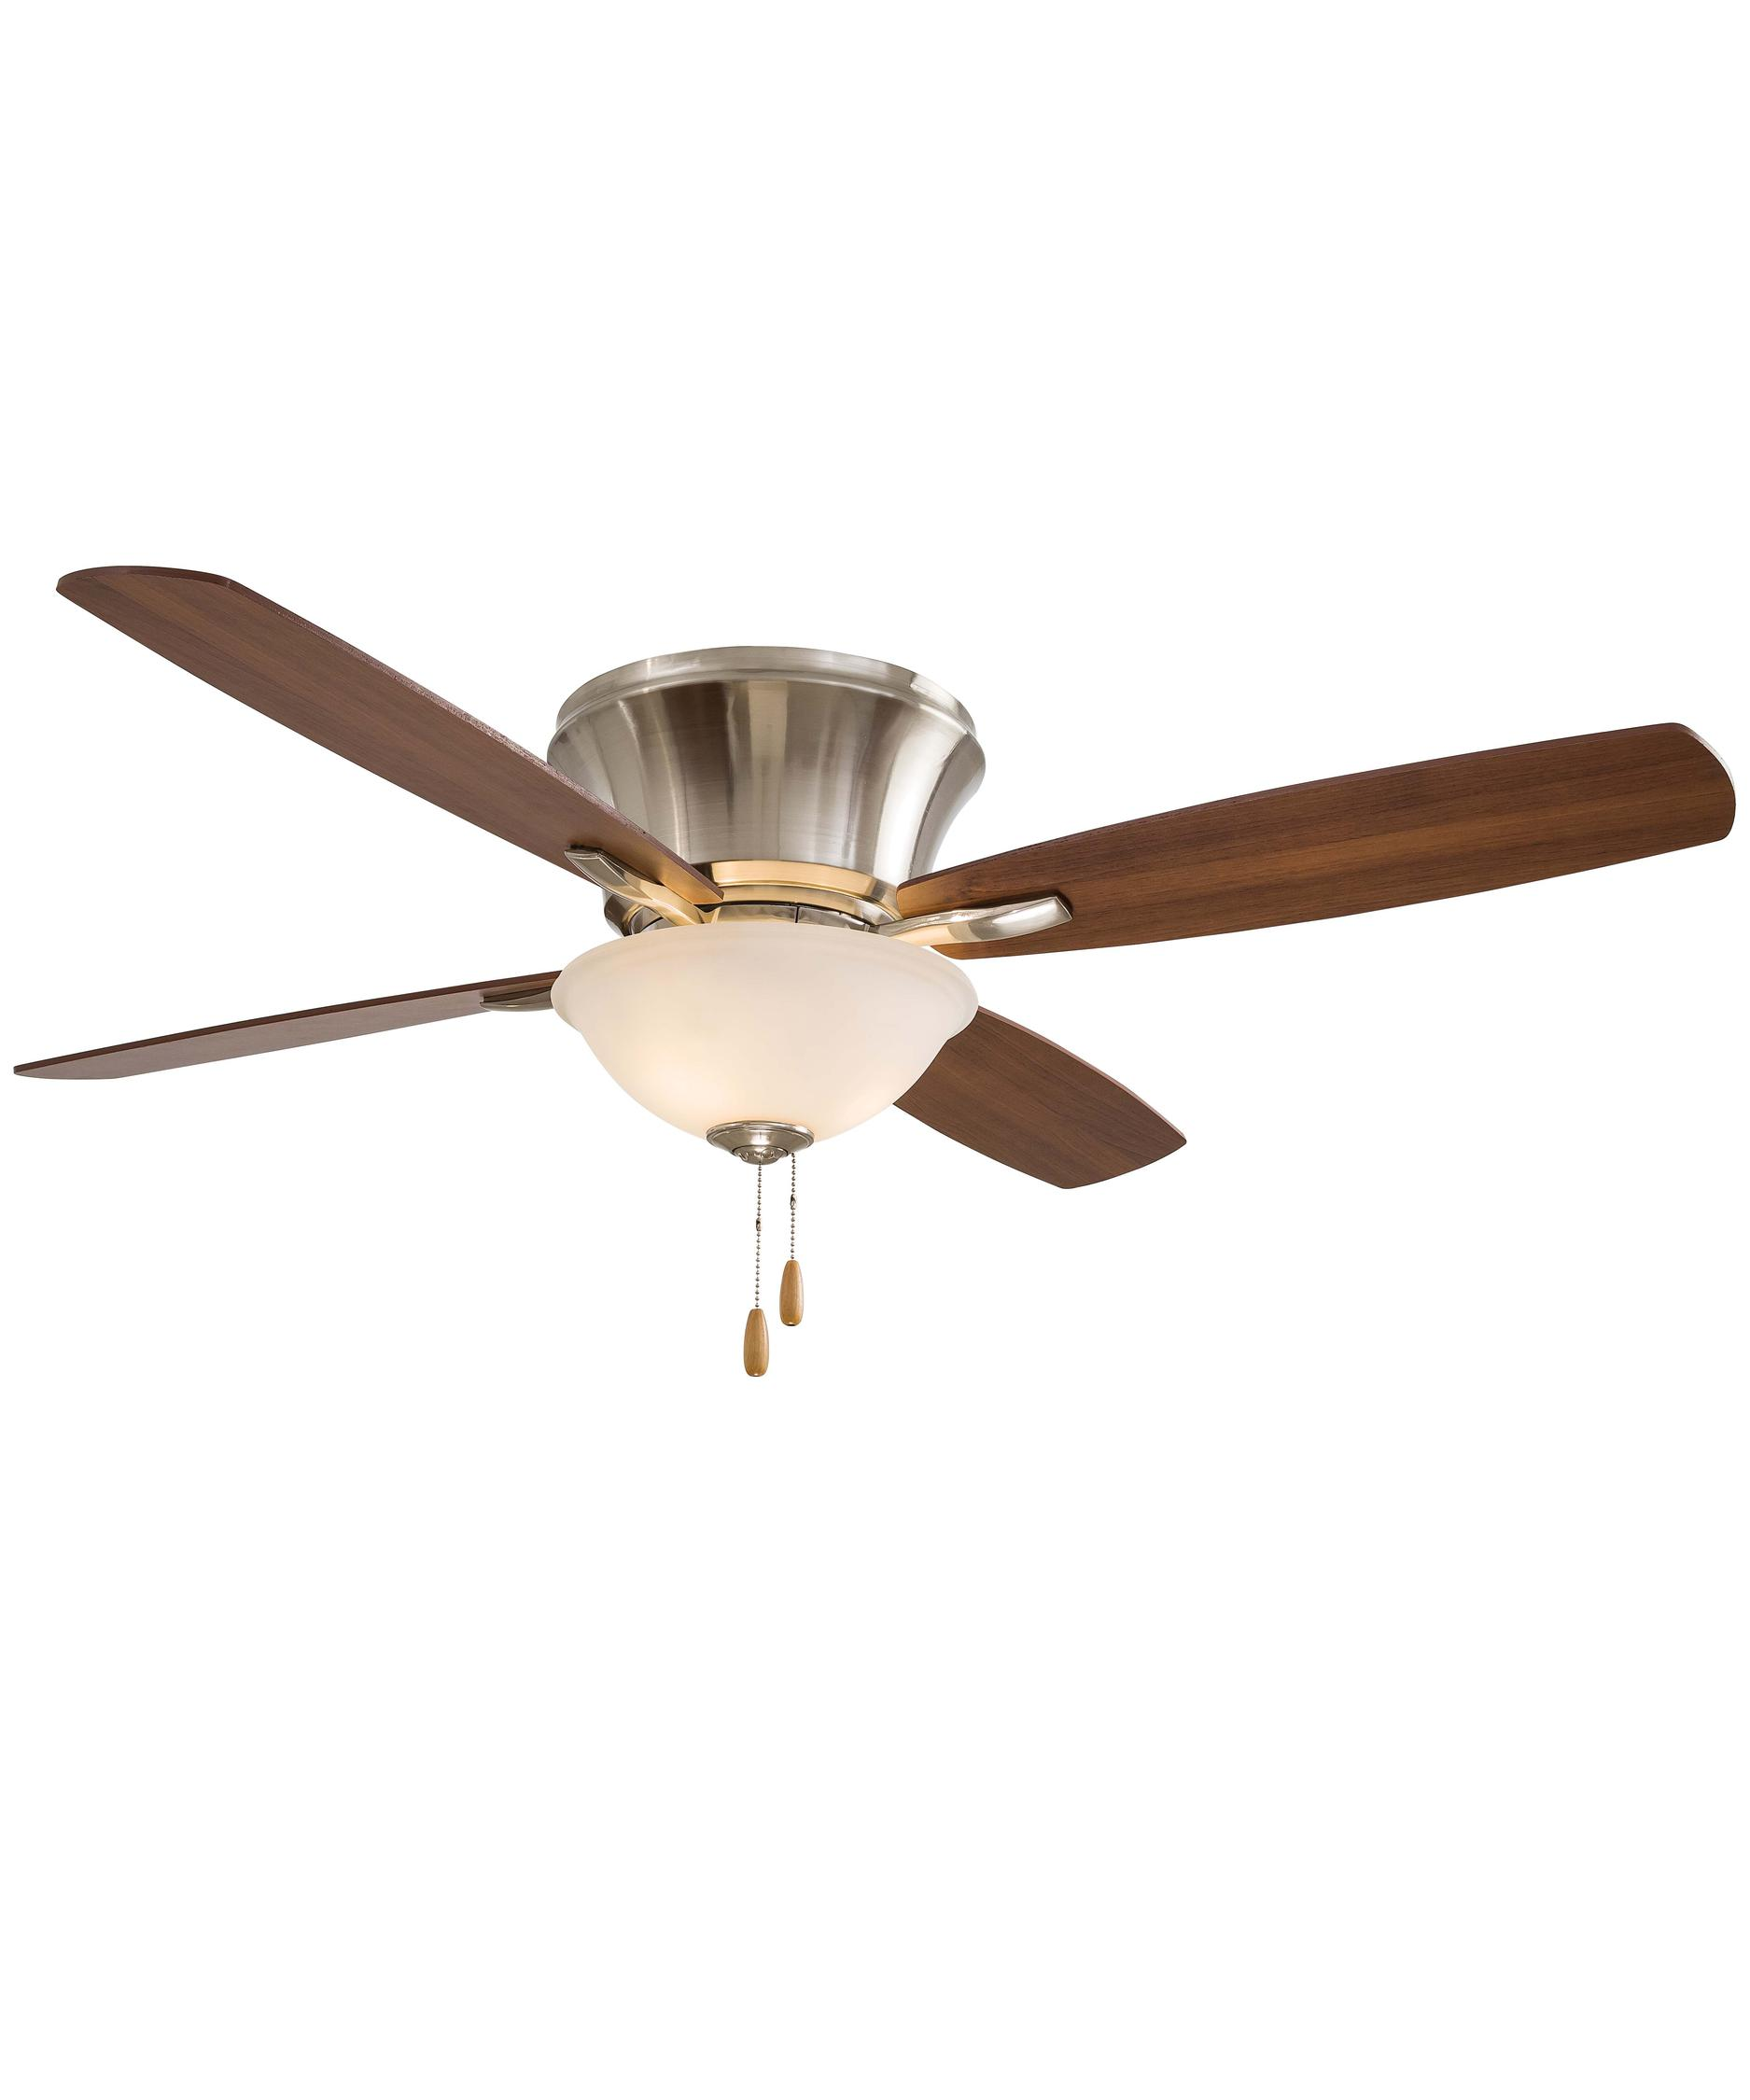 shown in brushed nickel finish and frosted white glass - Minka Aire Fans